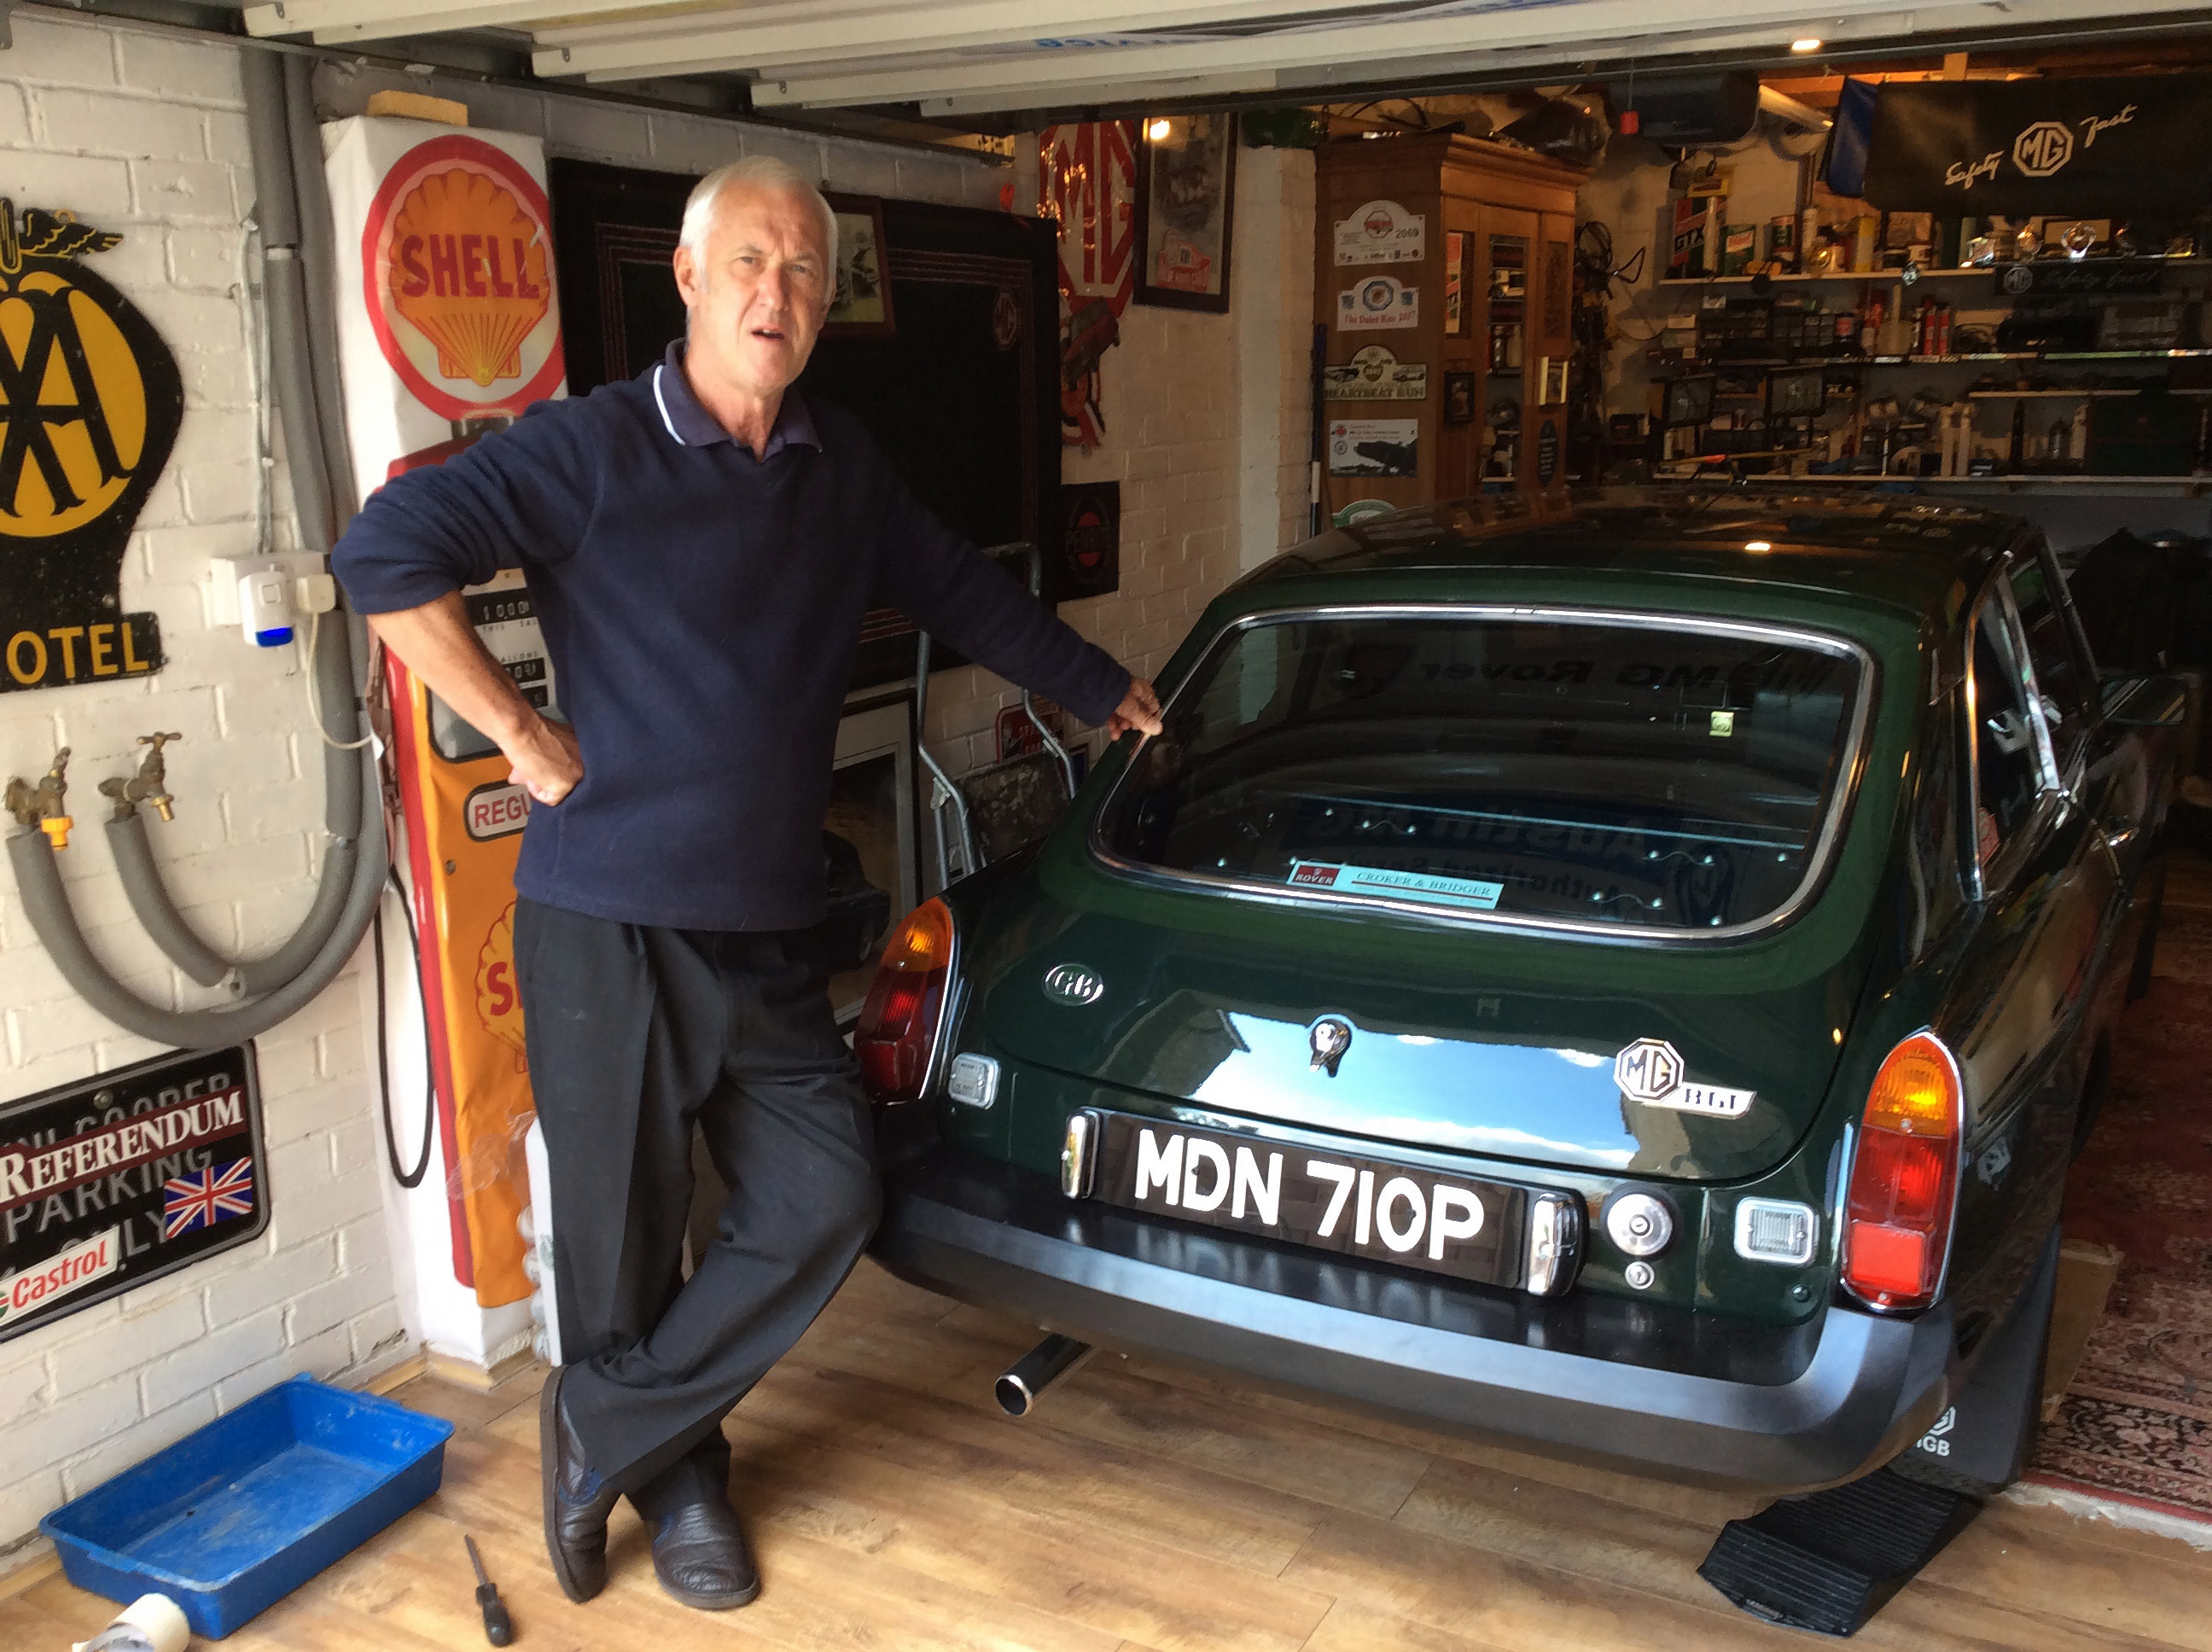 Steve says it was 'very emotional' reuniting with his car